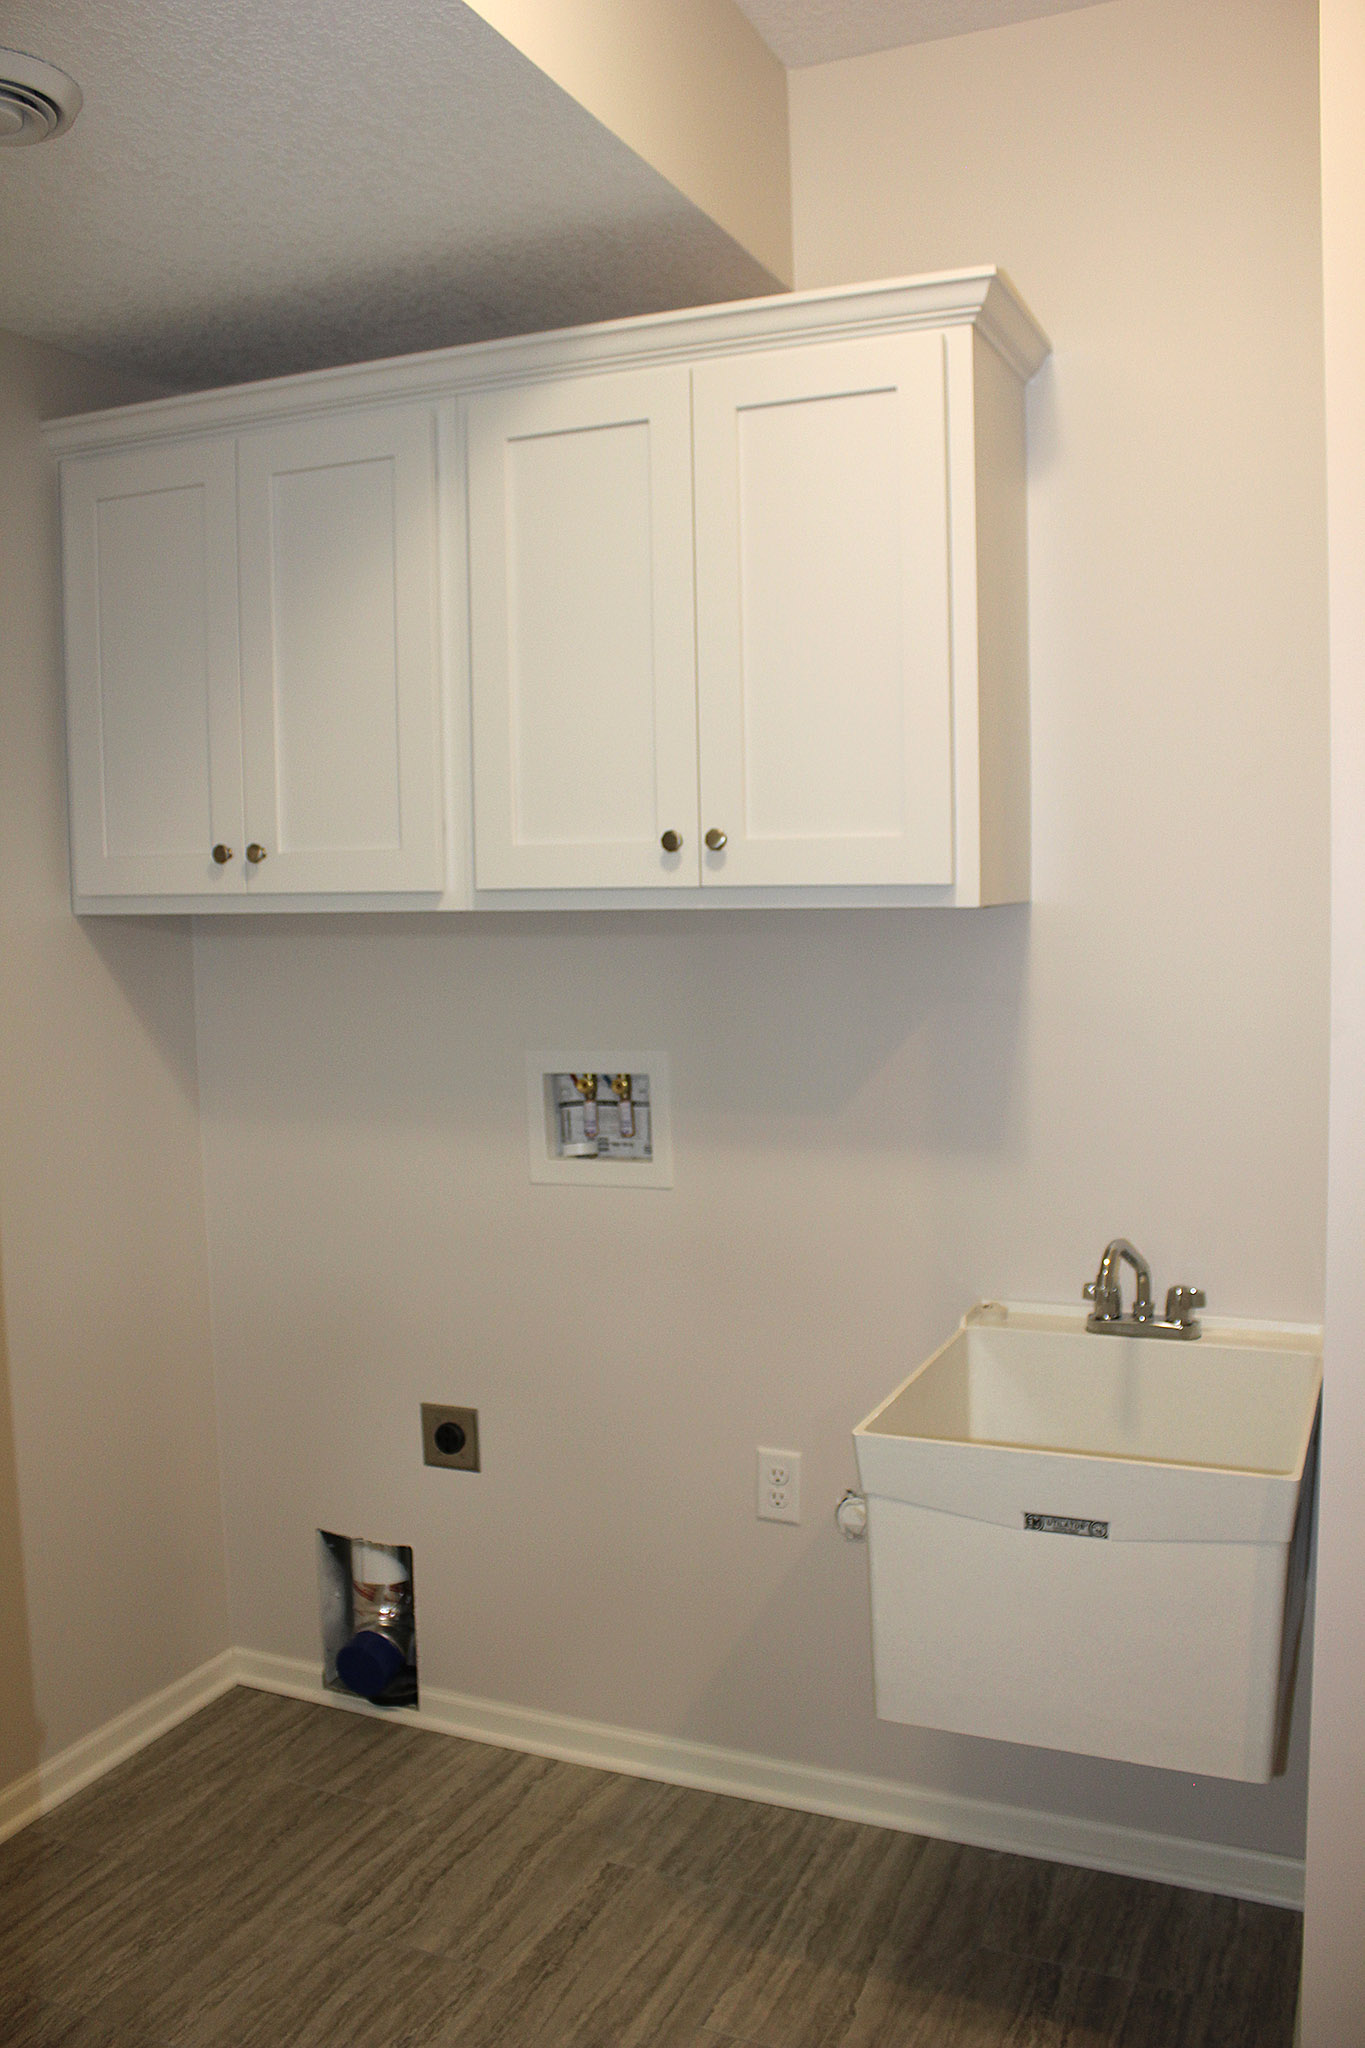 Laundry room with tub and cabinets